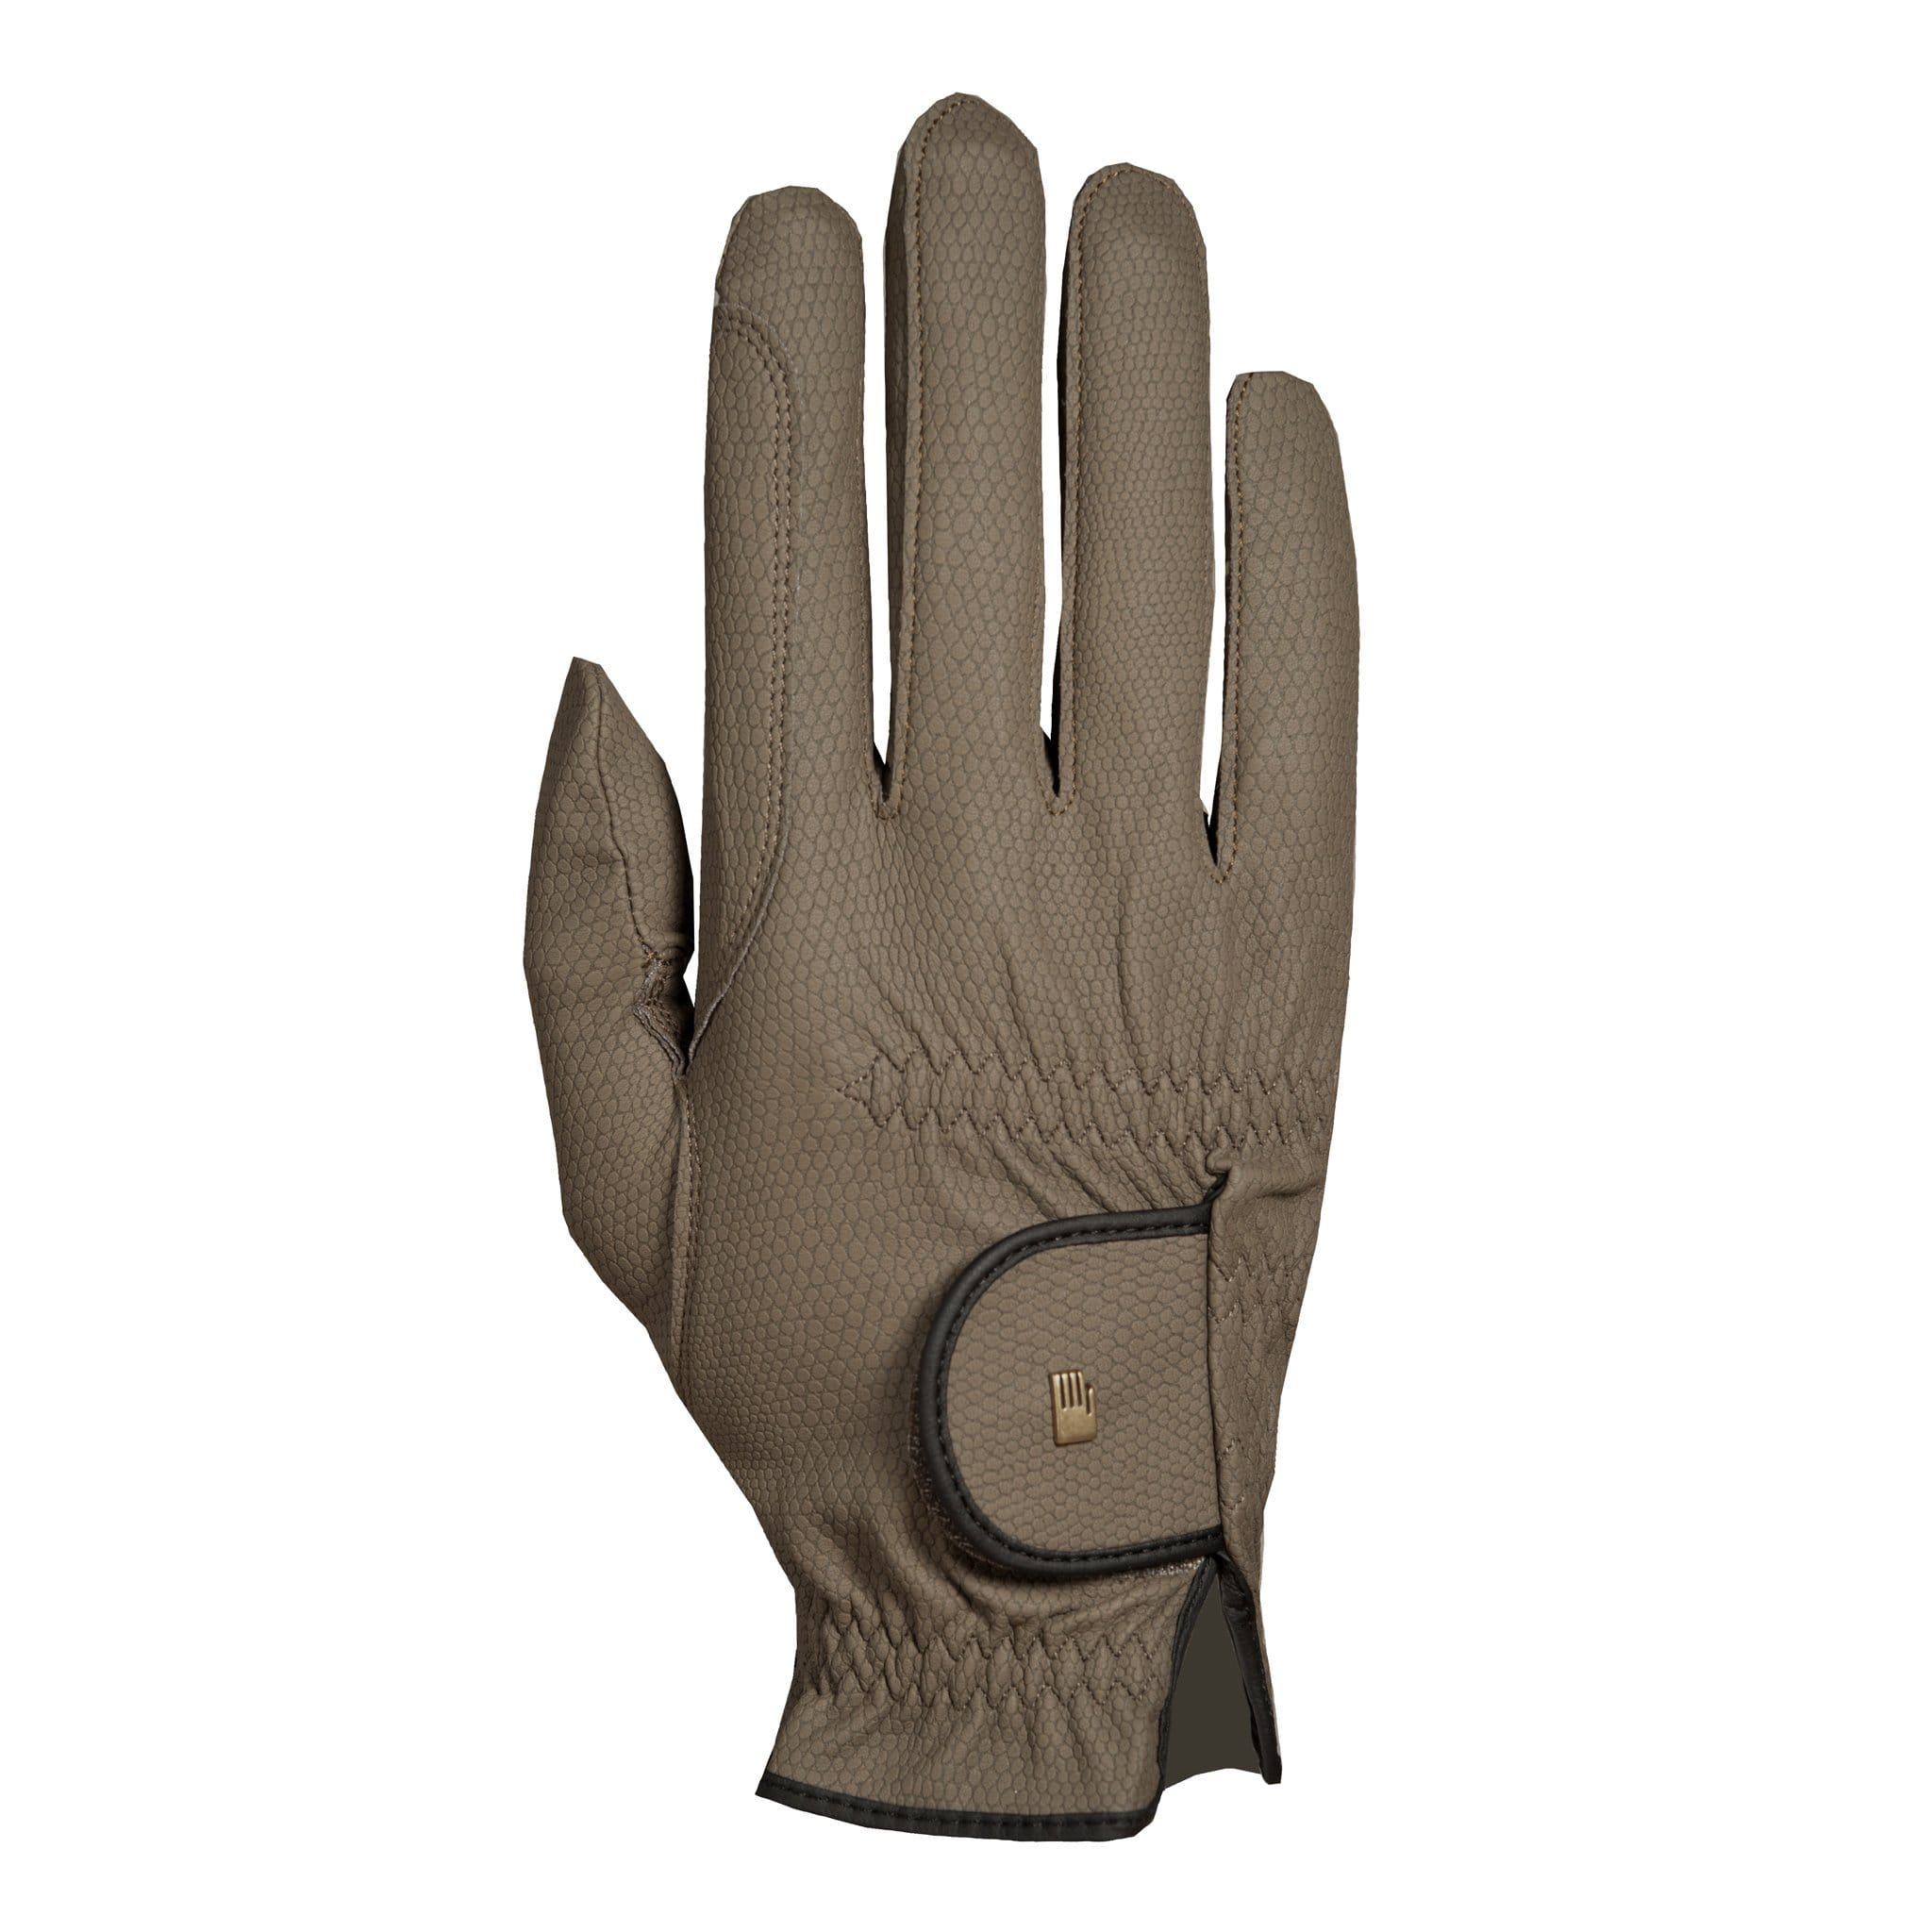 Roeckl Chester Gloves Khaki 3301-208-860